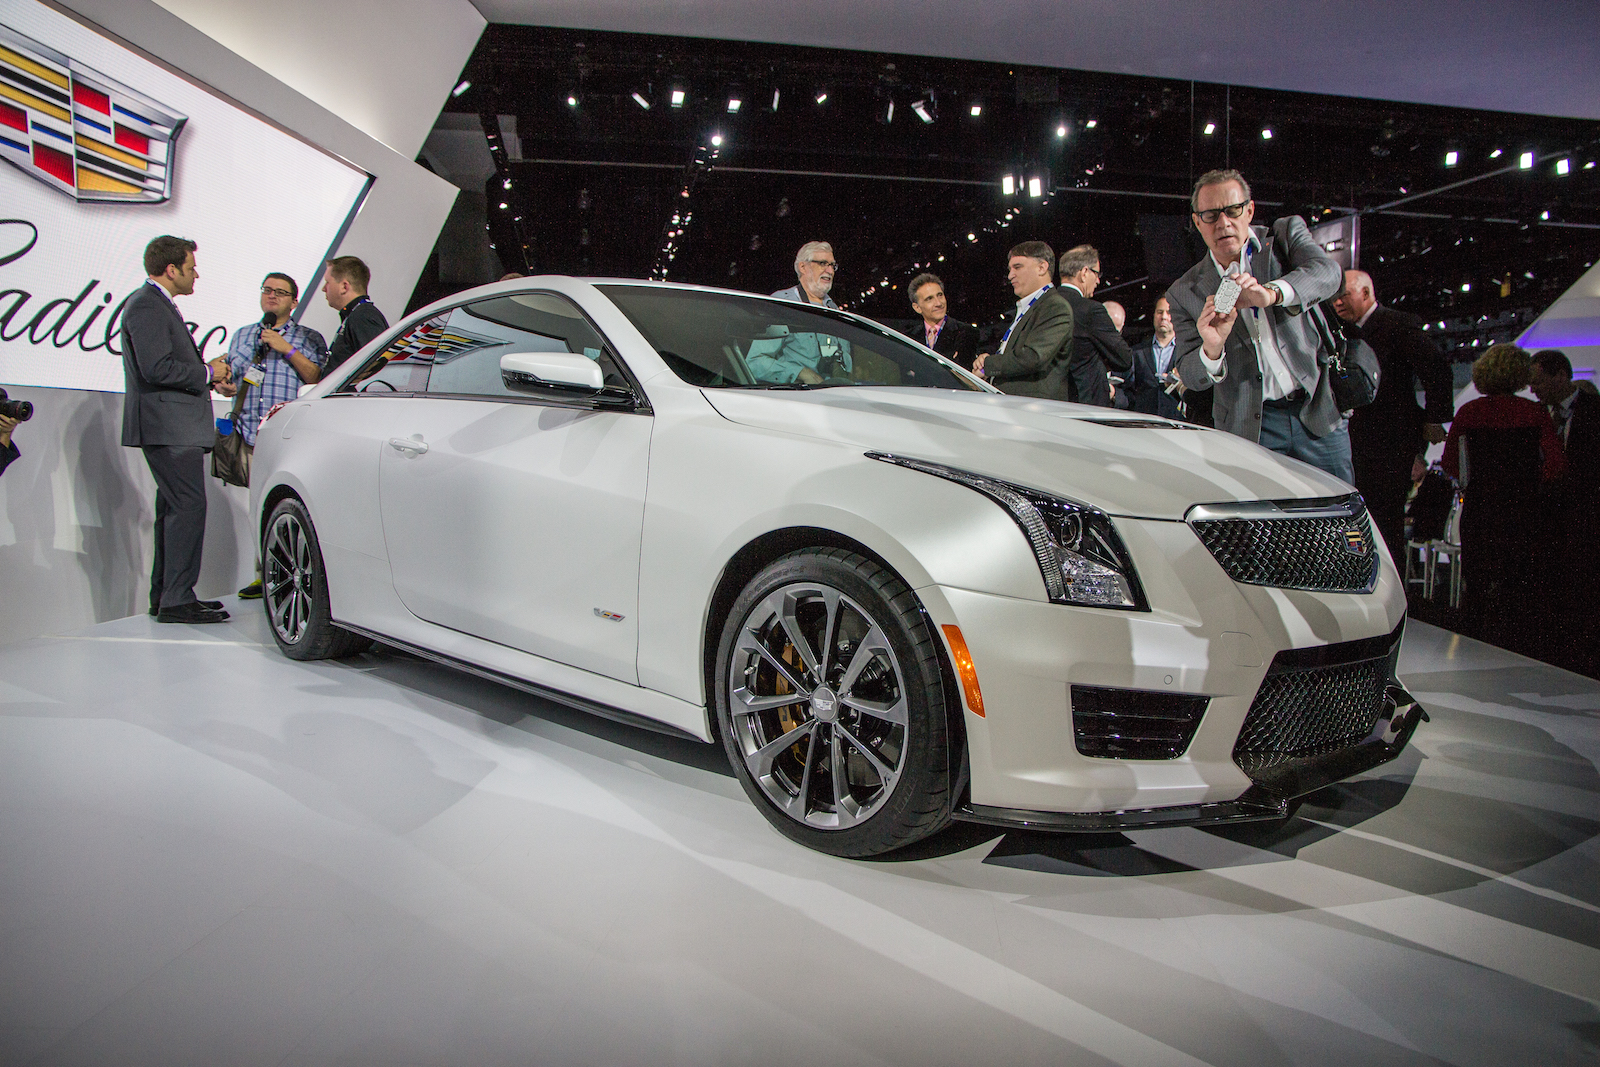 2016 Cadillac Ats V And Ats V Coupe 455 Hp And 0 60 Mph In 3 9 Seconds